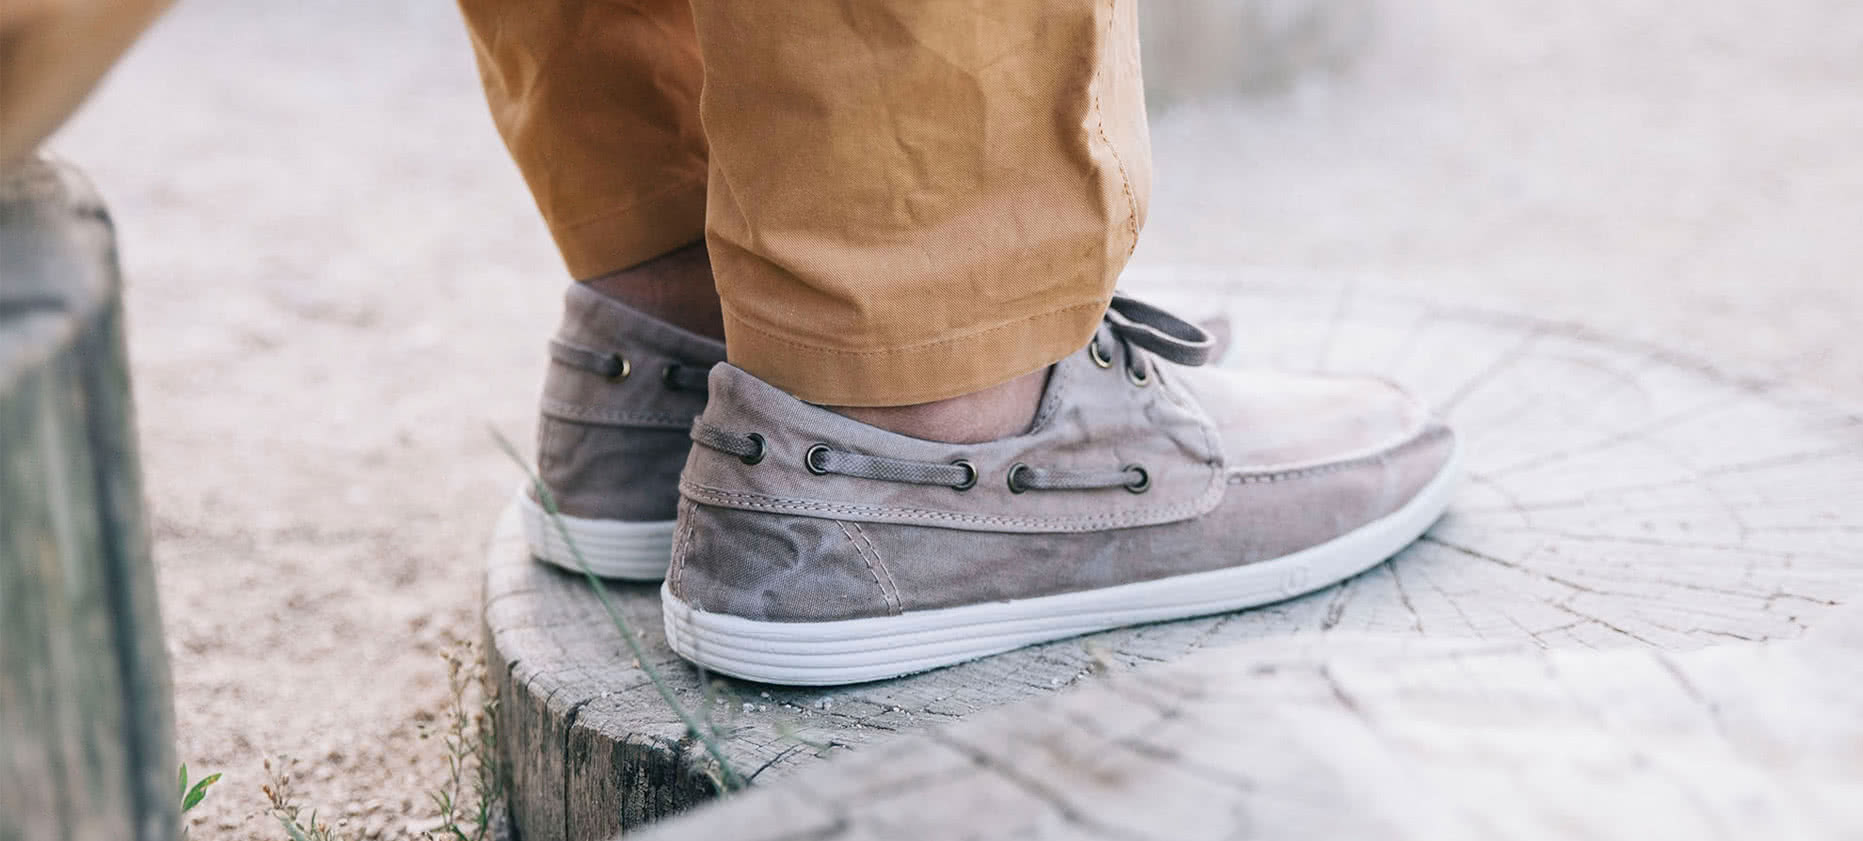 How to find the right boat shoes